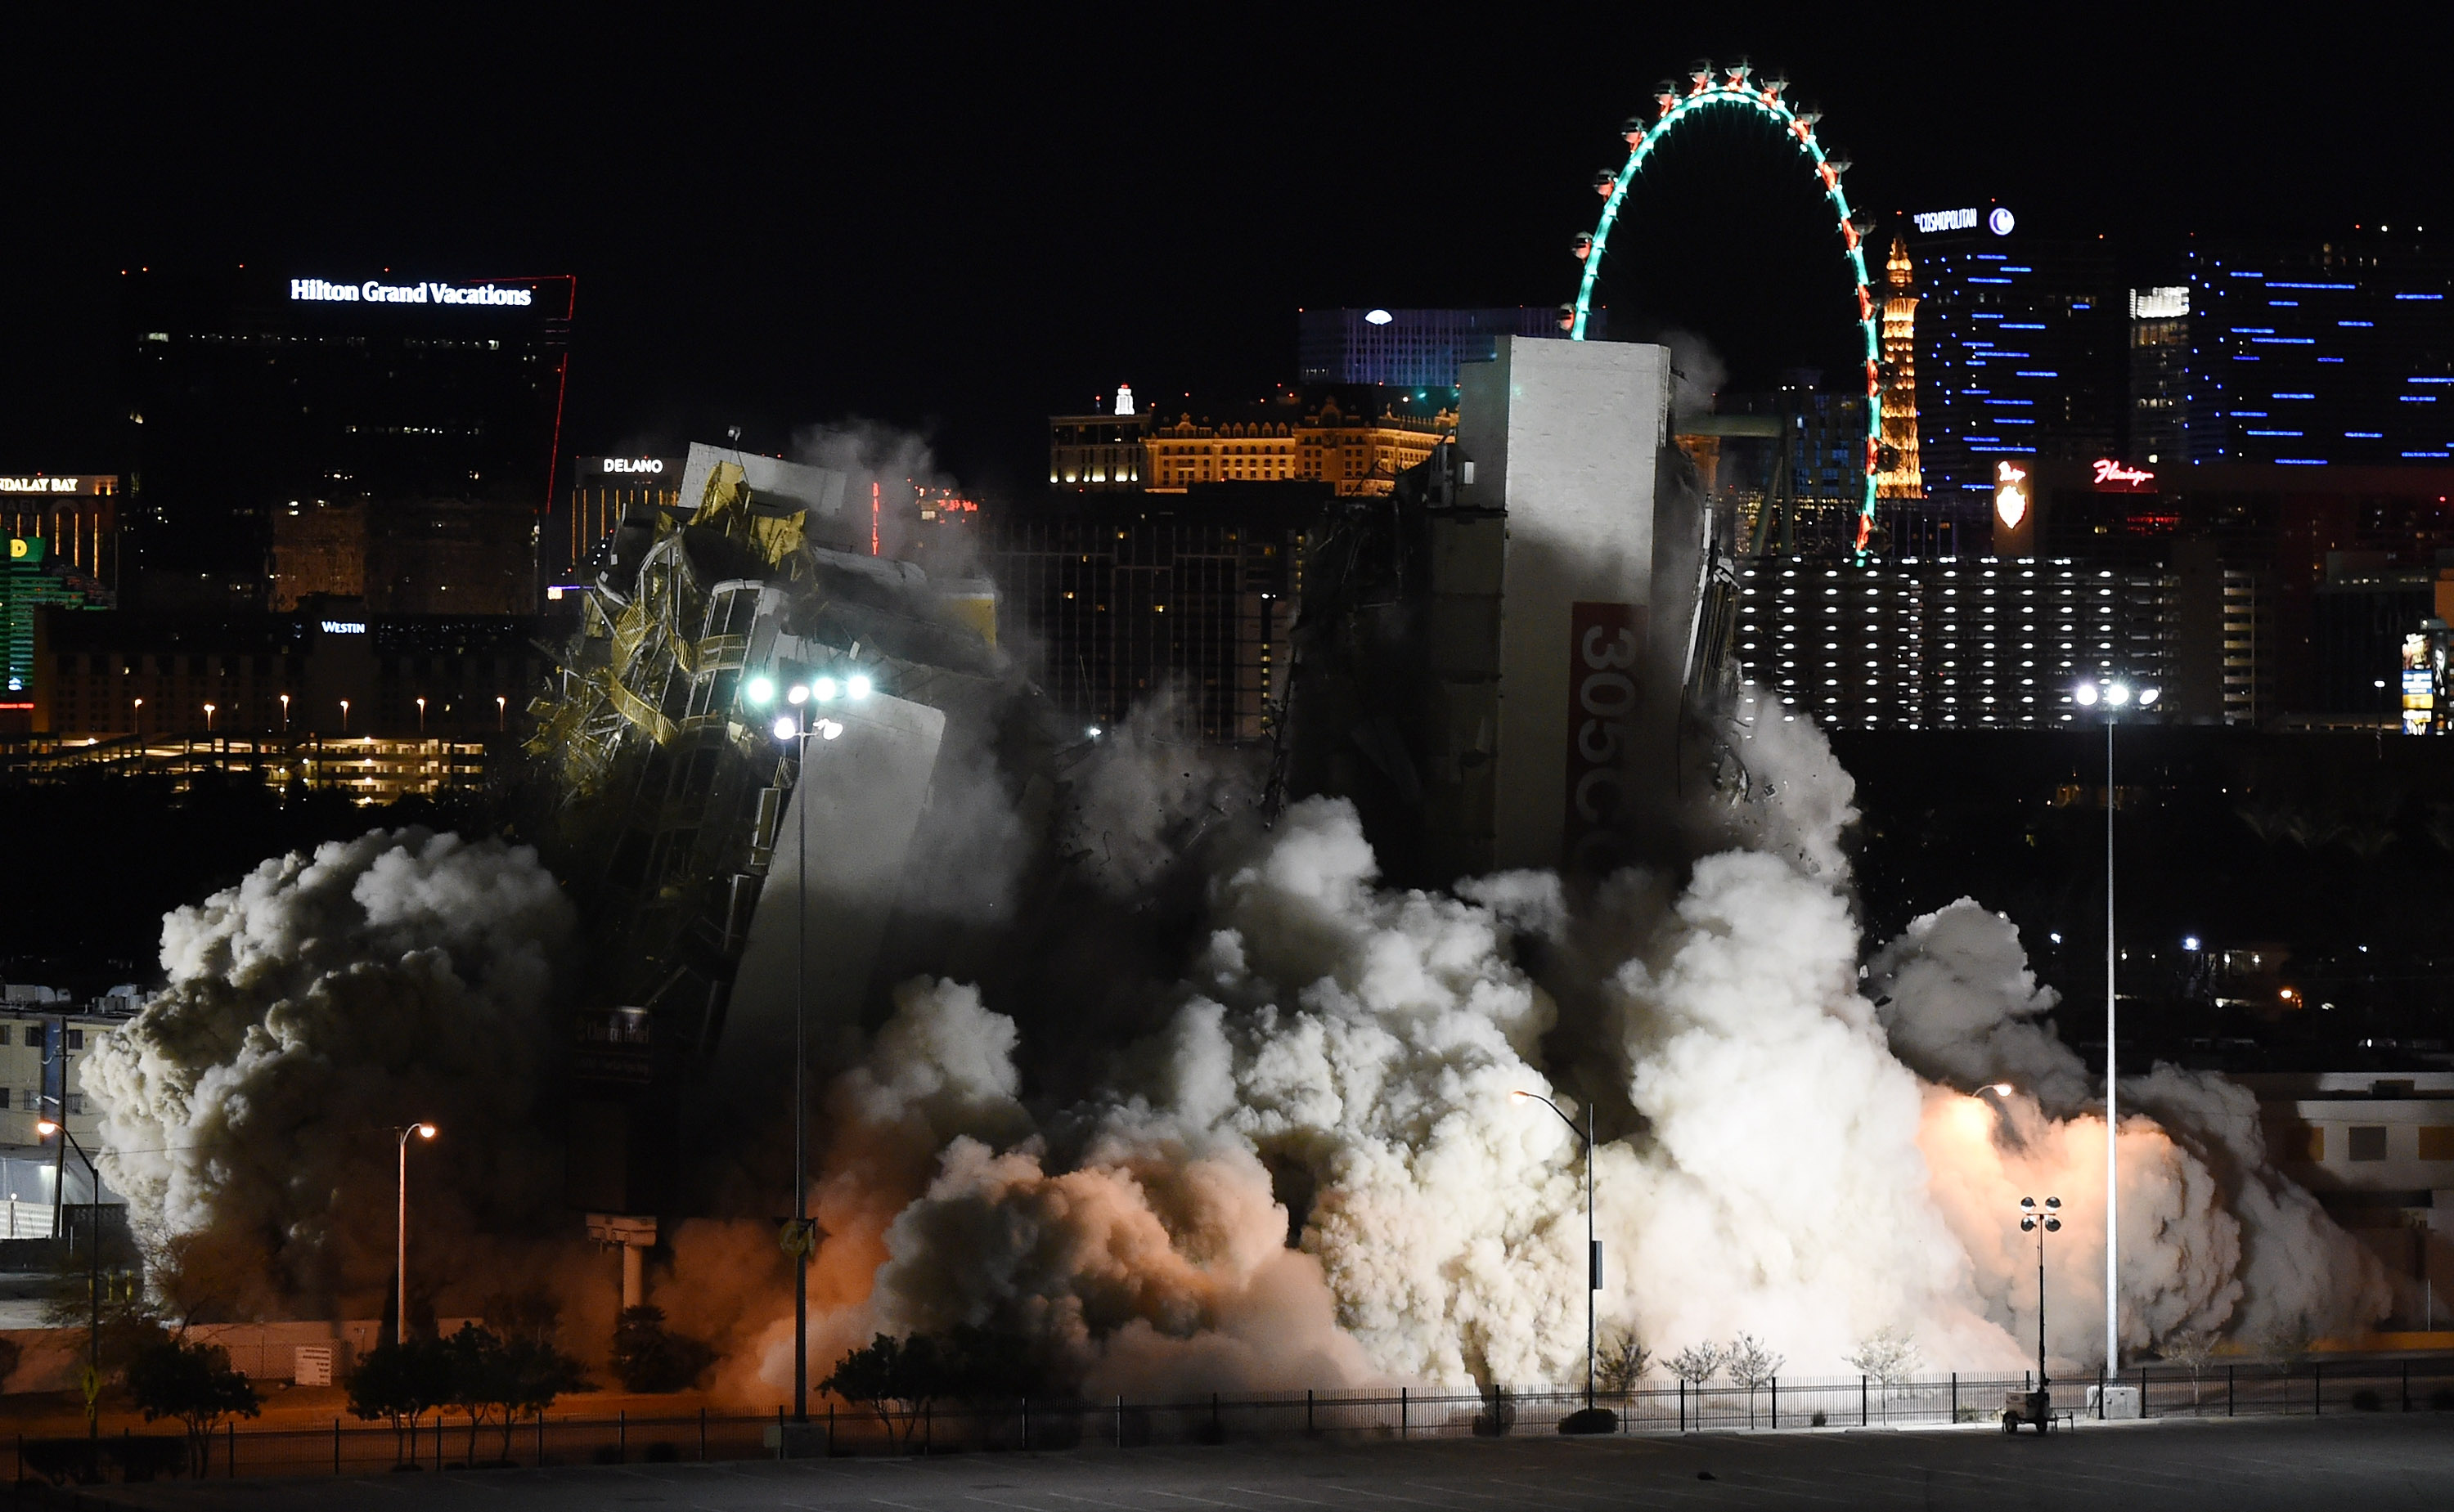 Casino imploded play your favorite casino